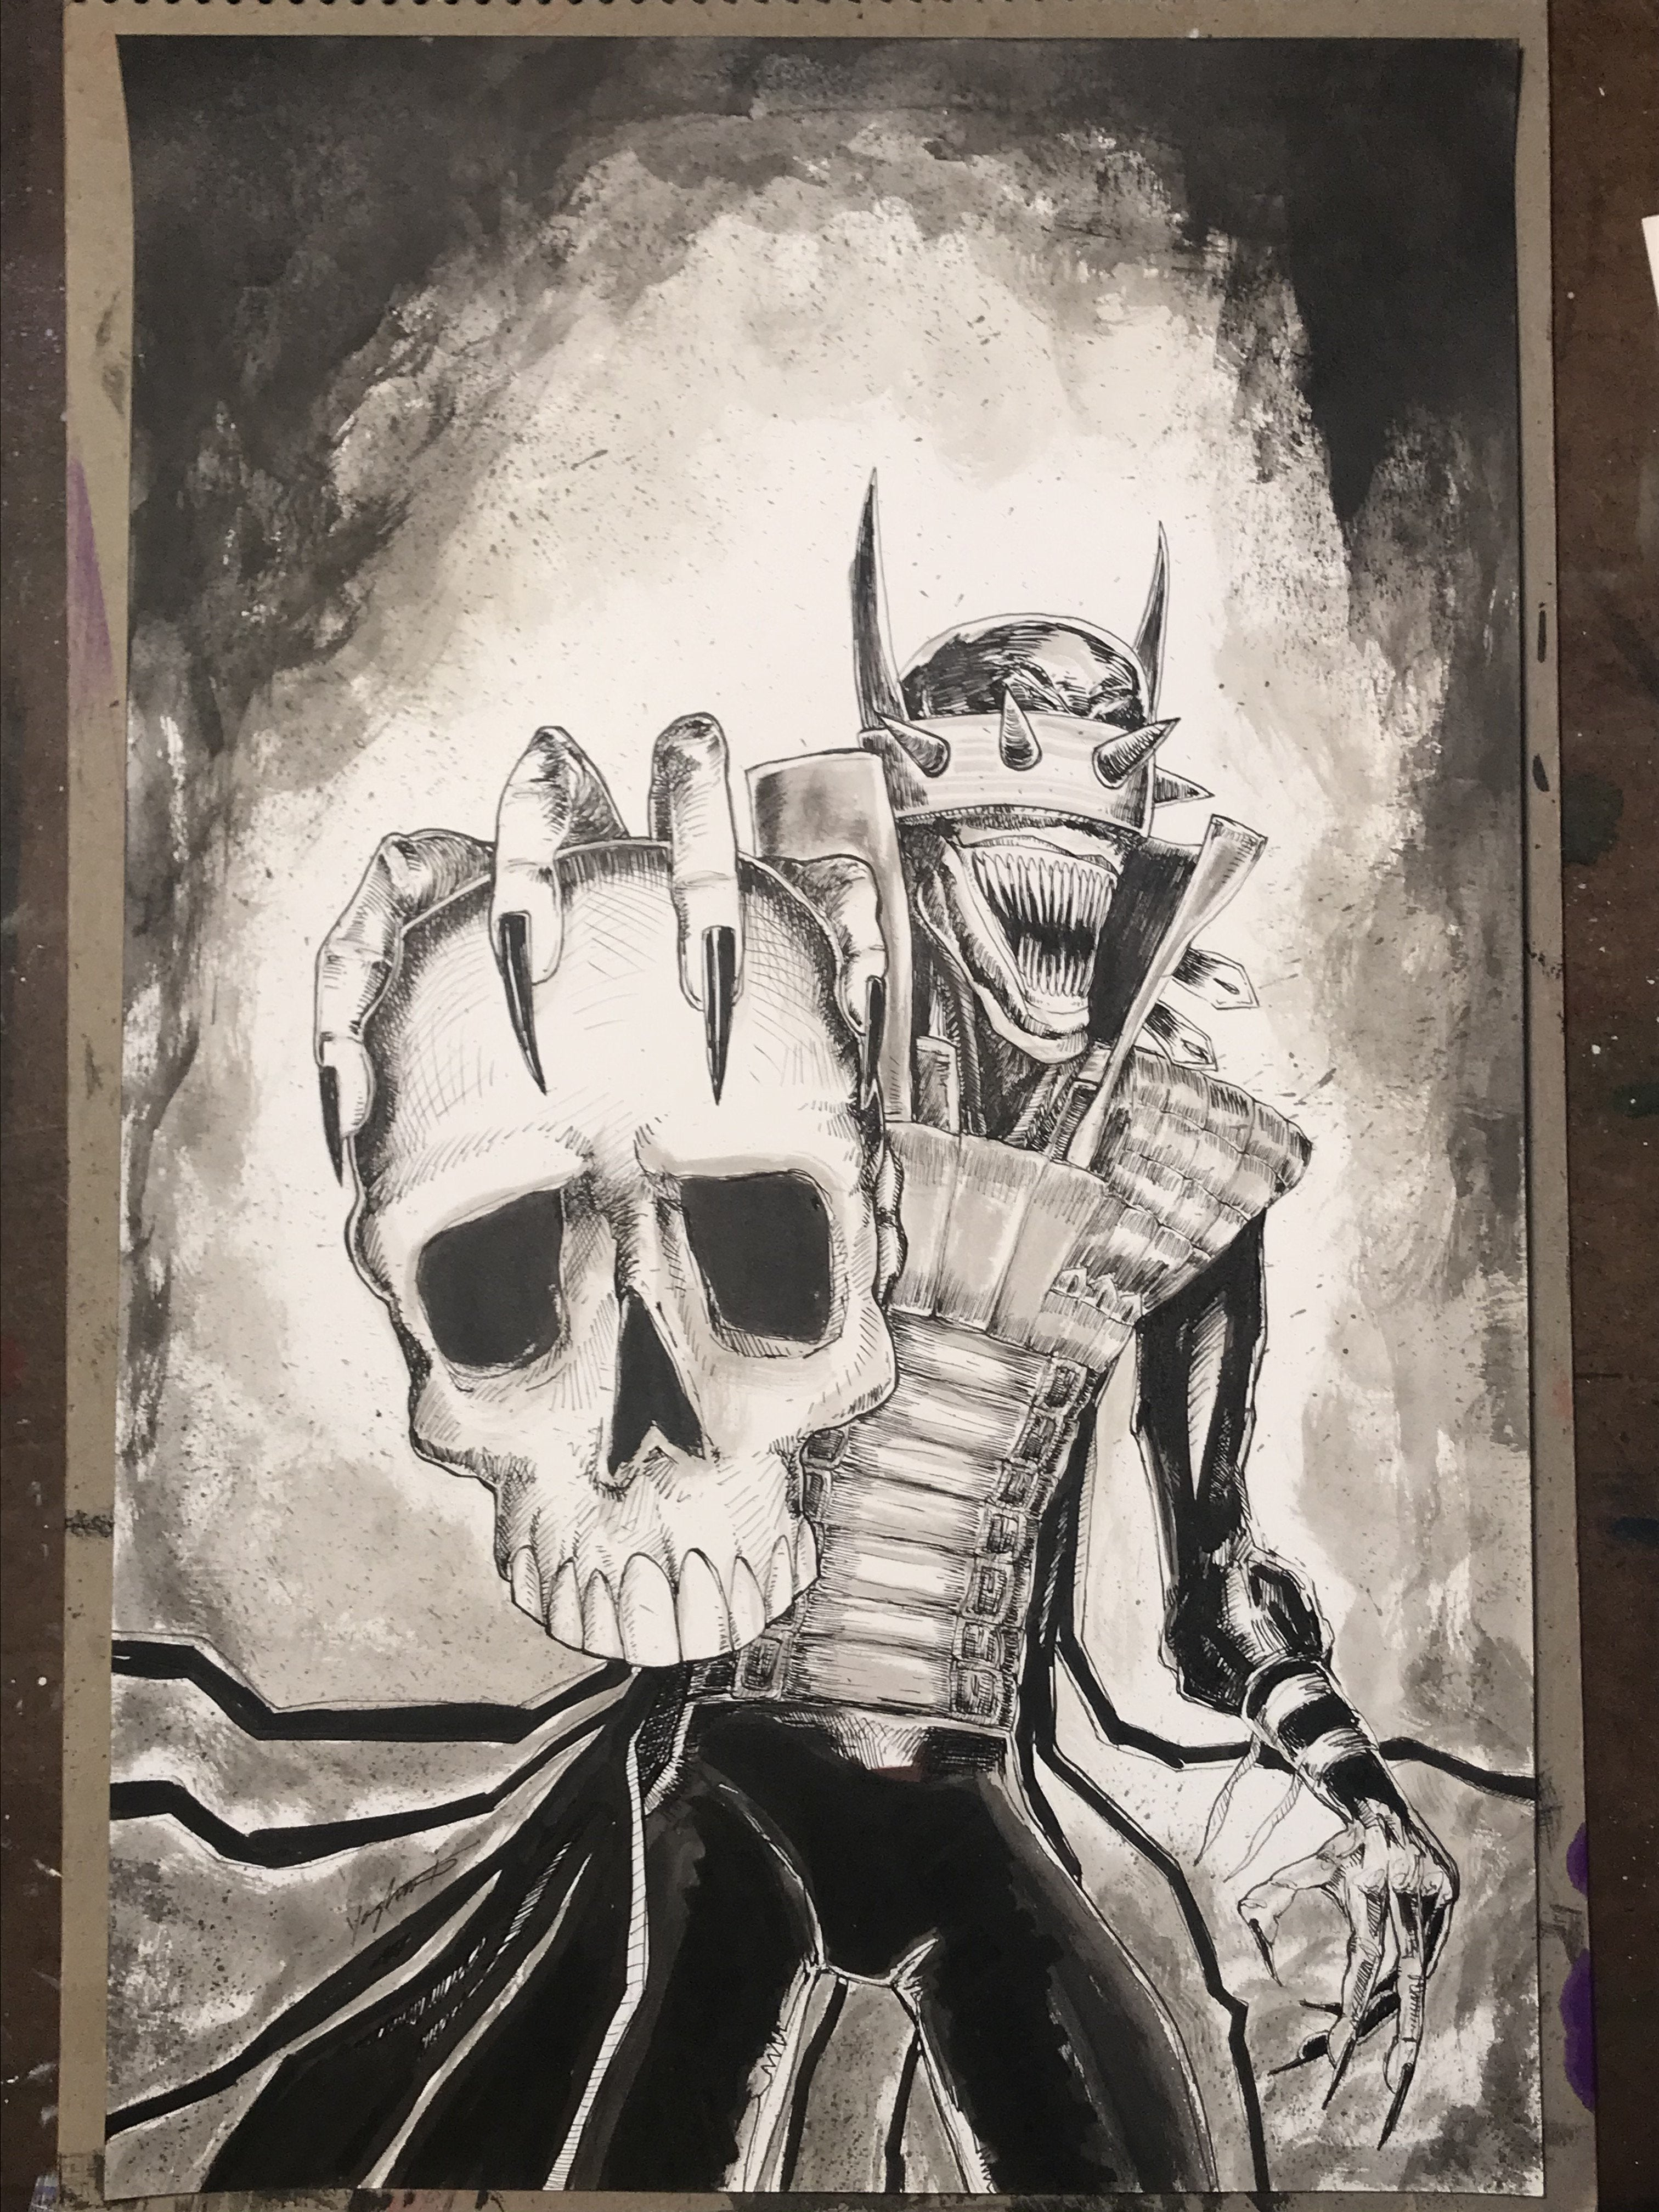 The Batman Who Laughs - Hank Yaghooti - Art and Illustration